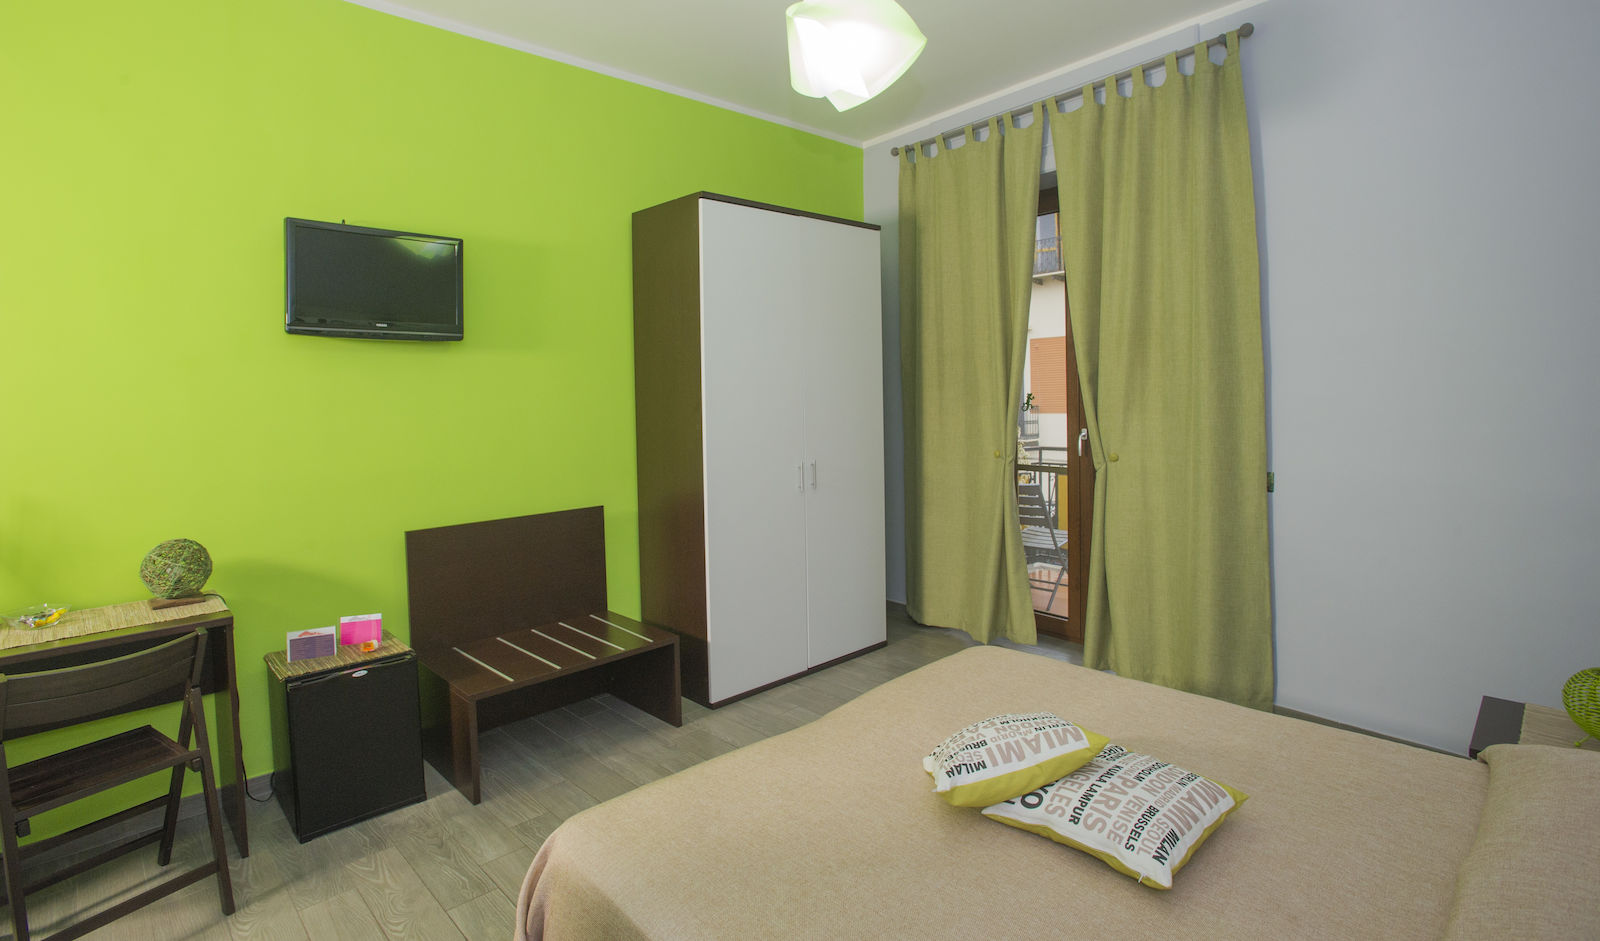 Bed and Breakfast Eco Pompei, double green with balcony.